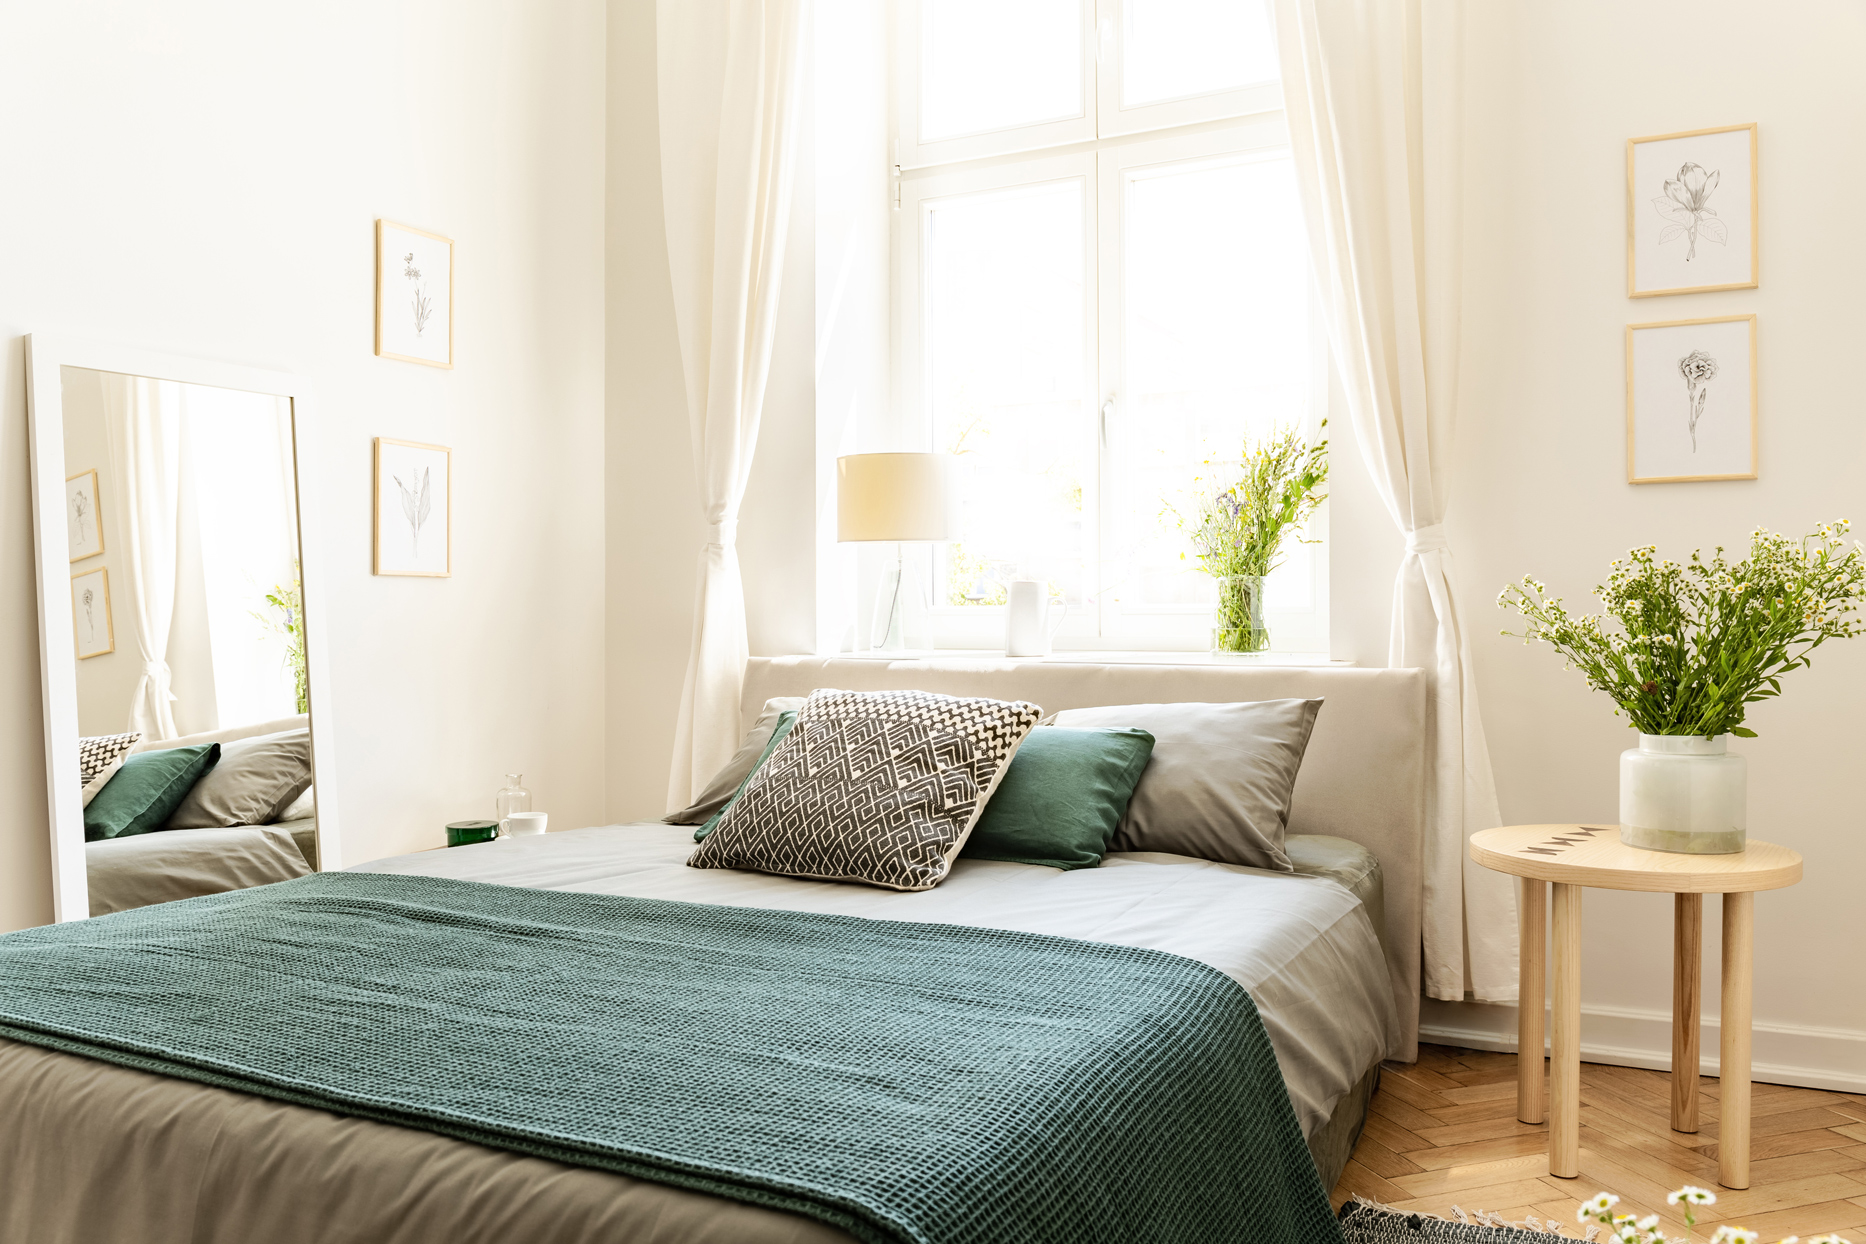 How to Choose the Right Bed for Your Room